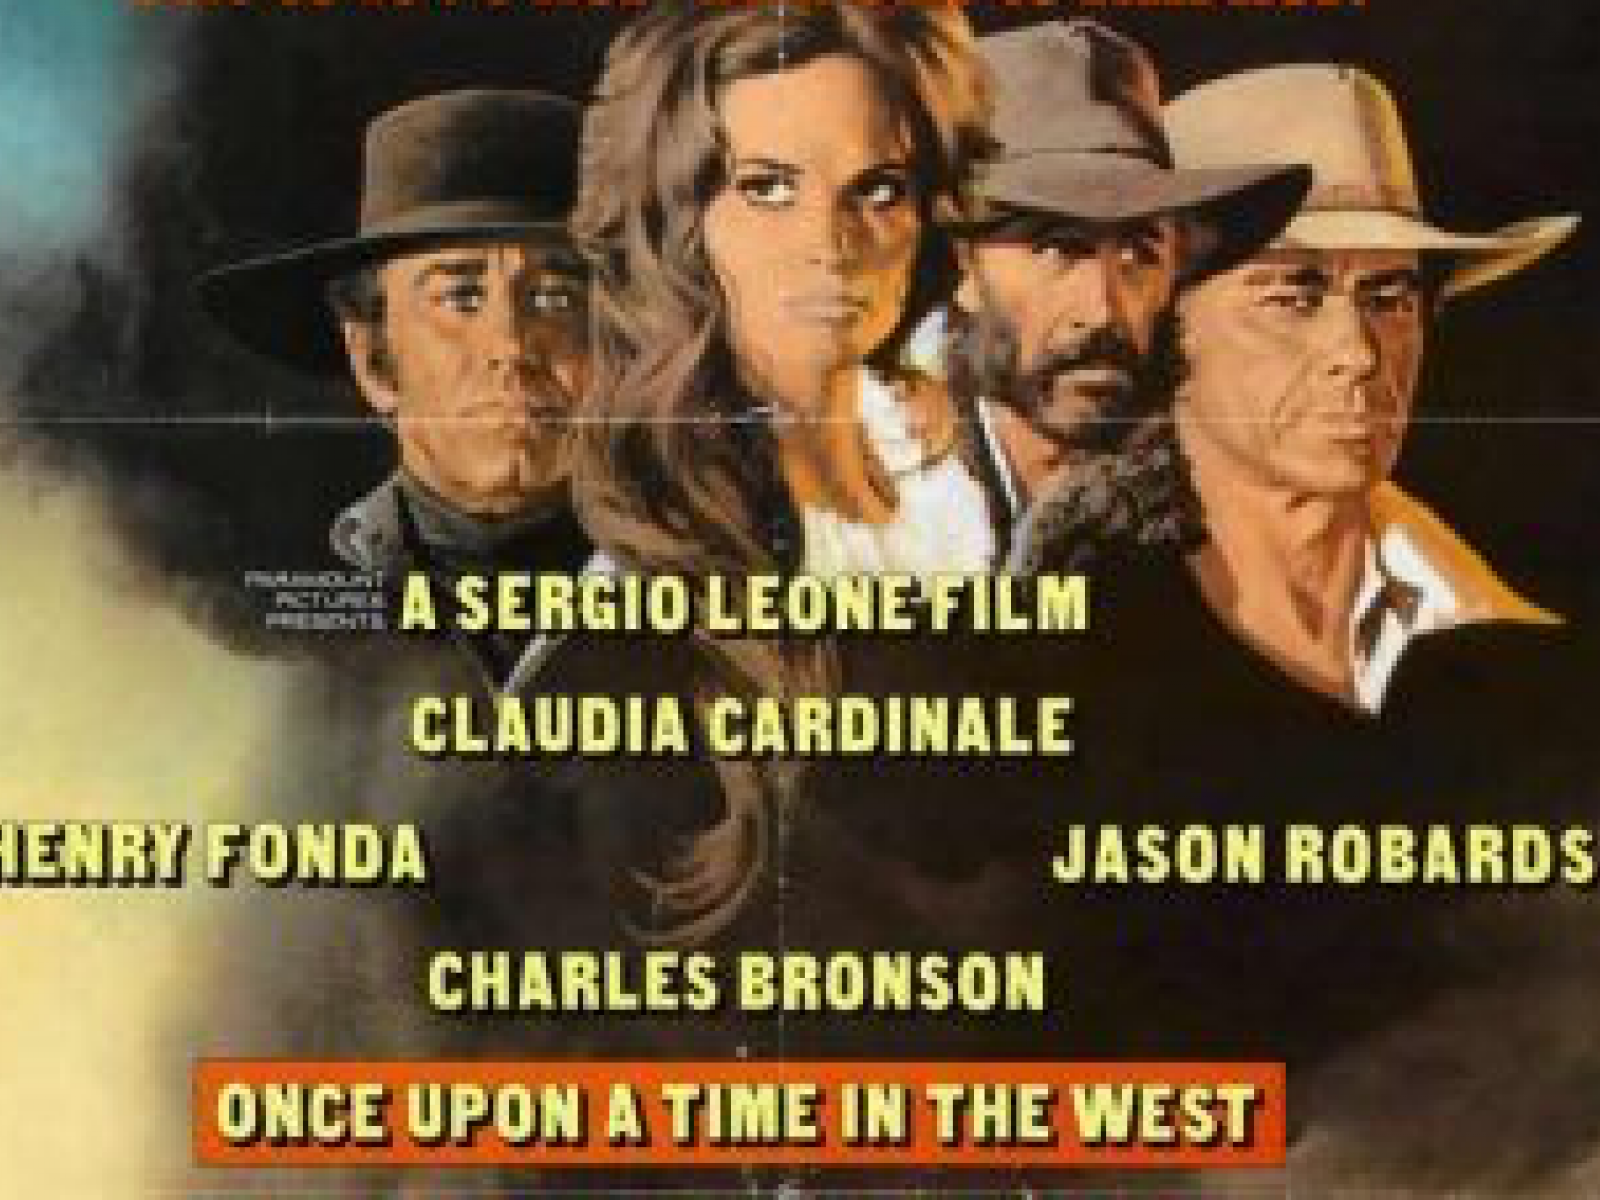 Main image for event titled ONCE UPON A TIME IN THE WEST